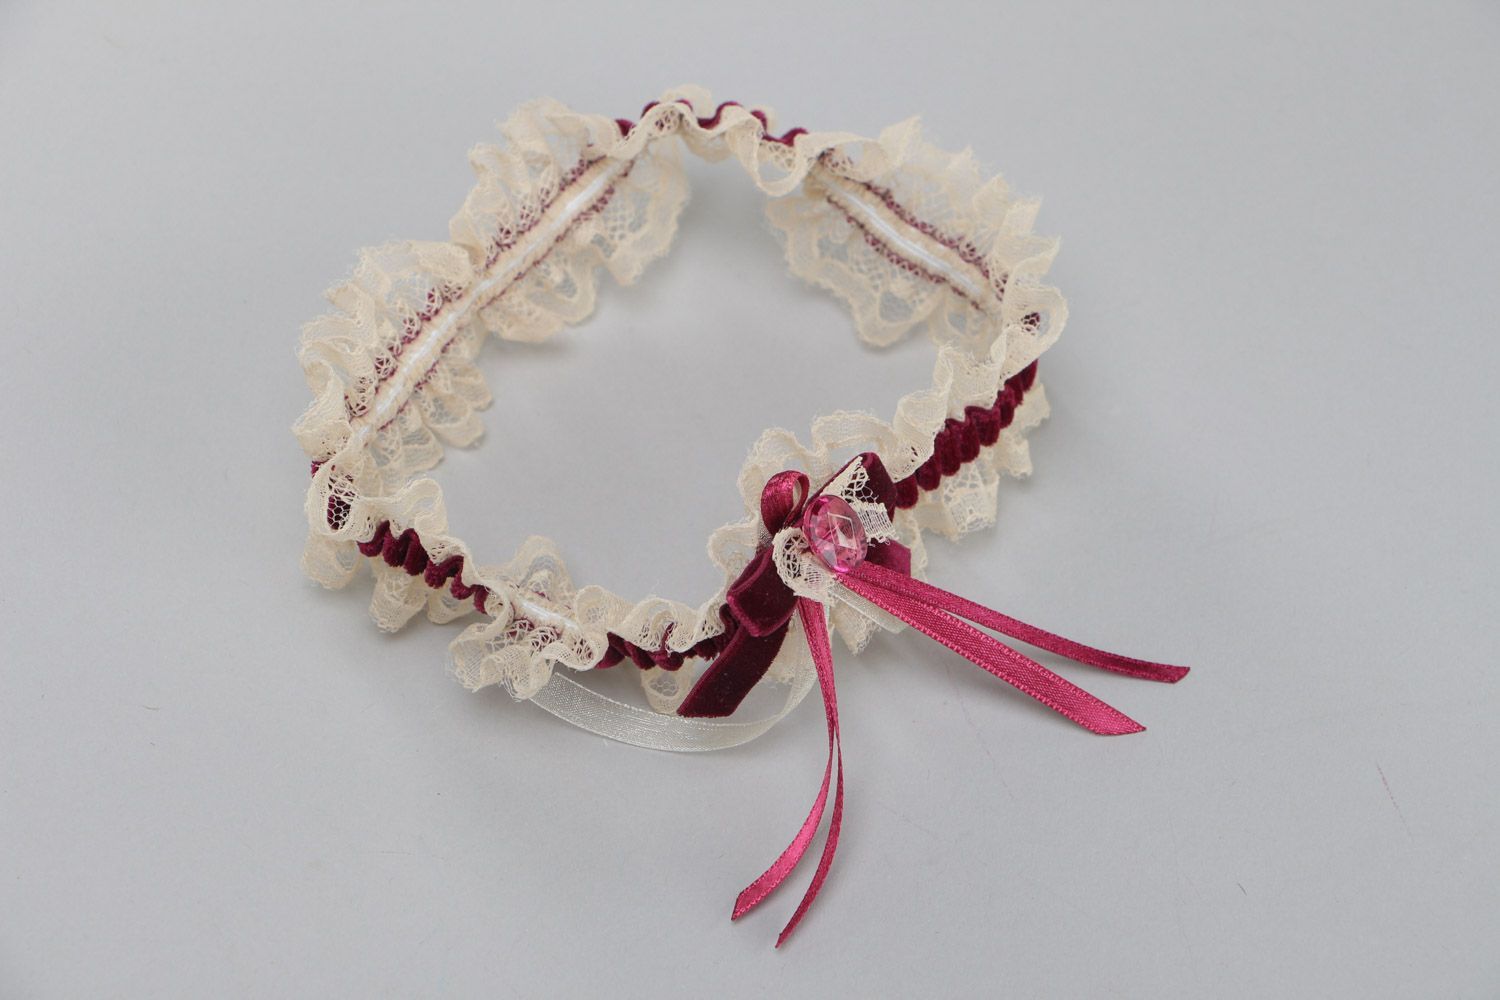 wedding accessories Handmade wedding bridal garter with lace and velor bow of dark violet color - MADEheart.com